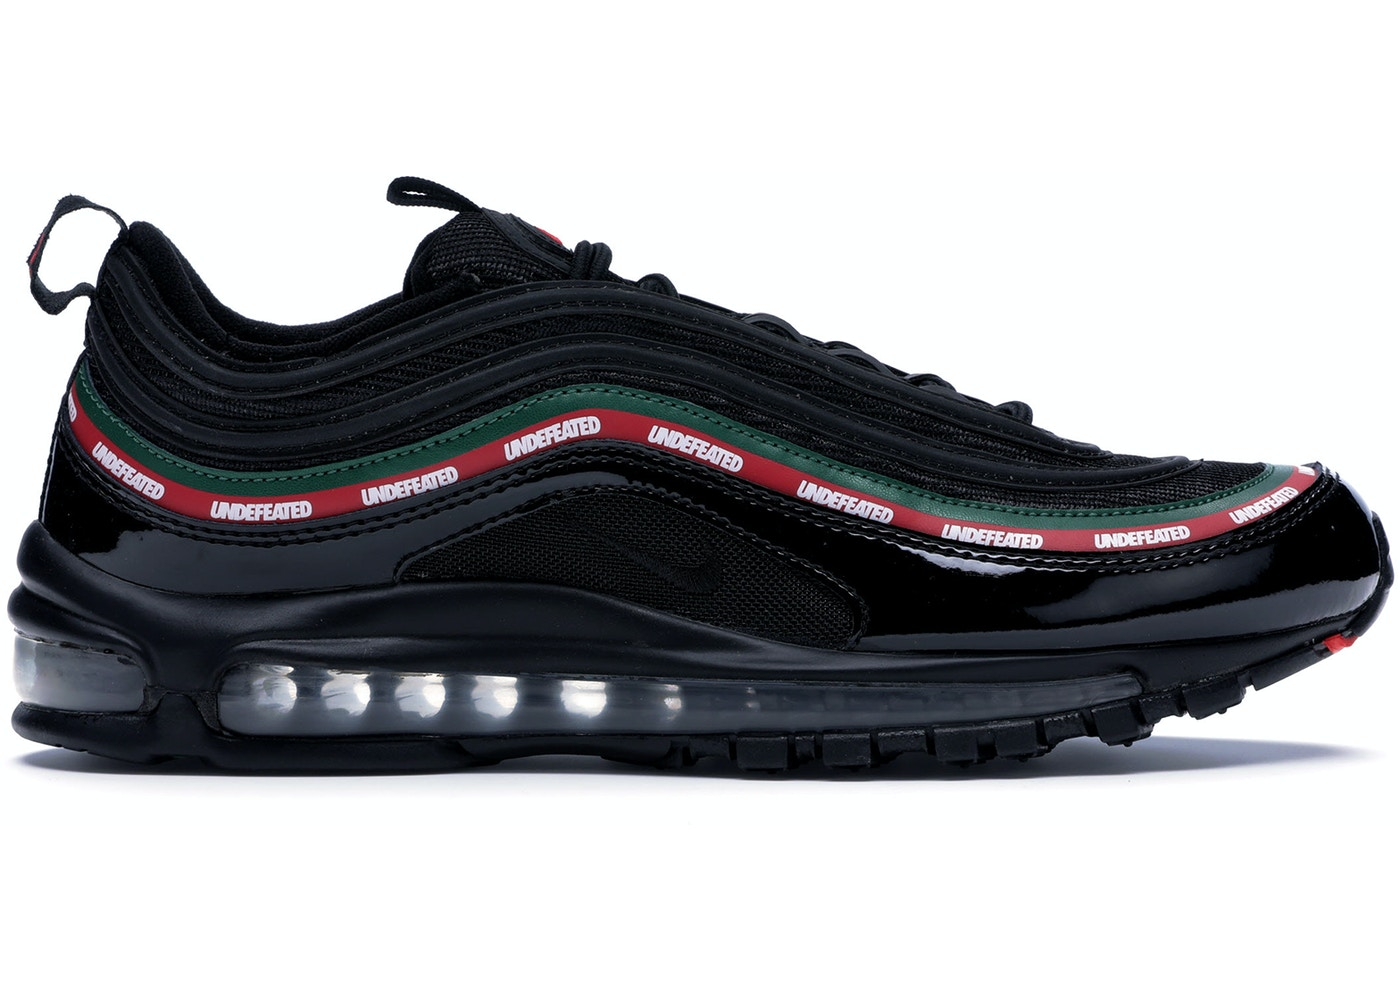 on sale 9758b ba40e Air Max 97 UNDFTD Black - AJ1986-001